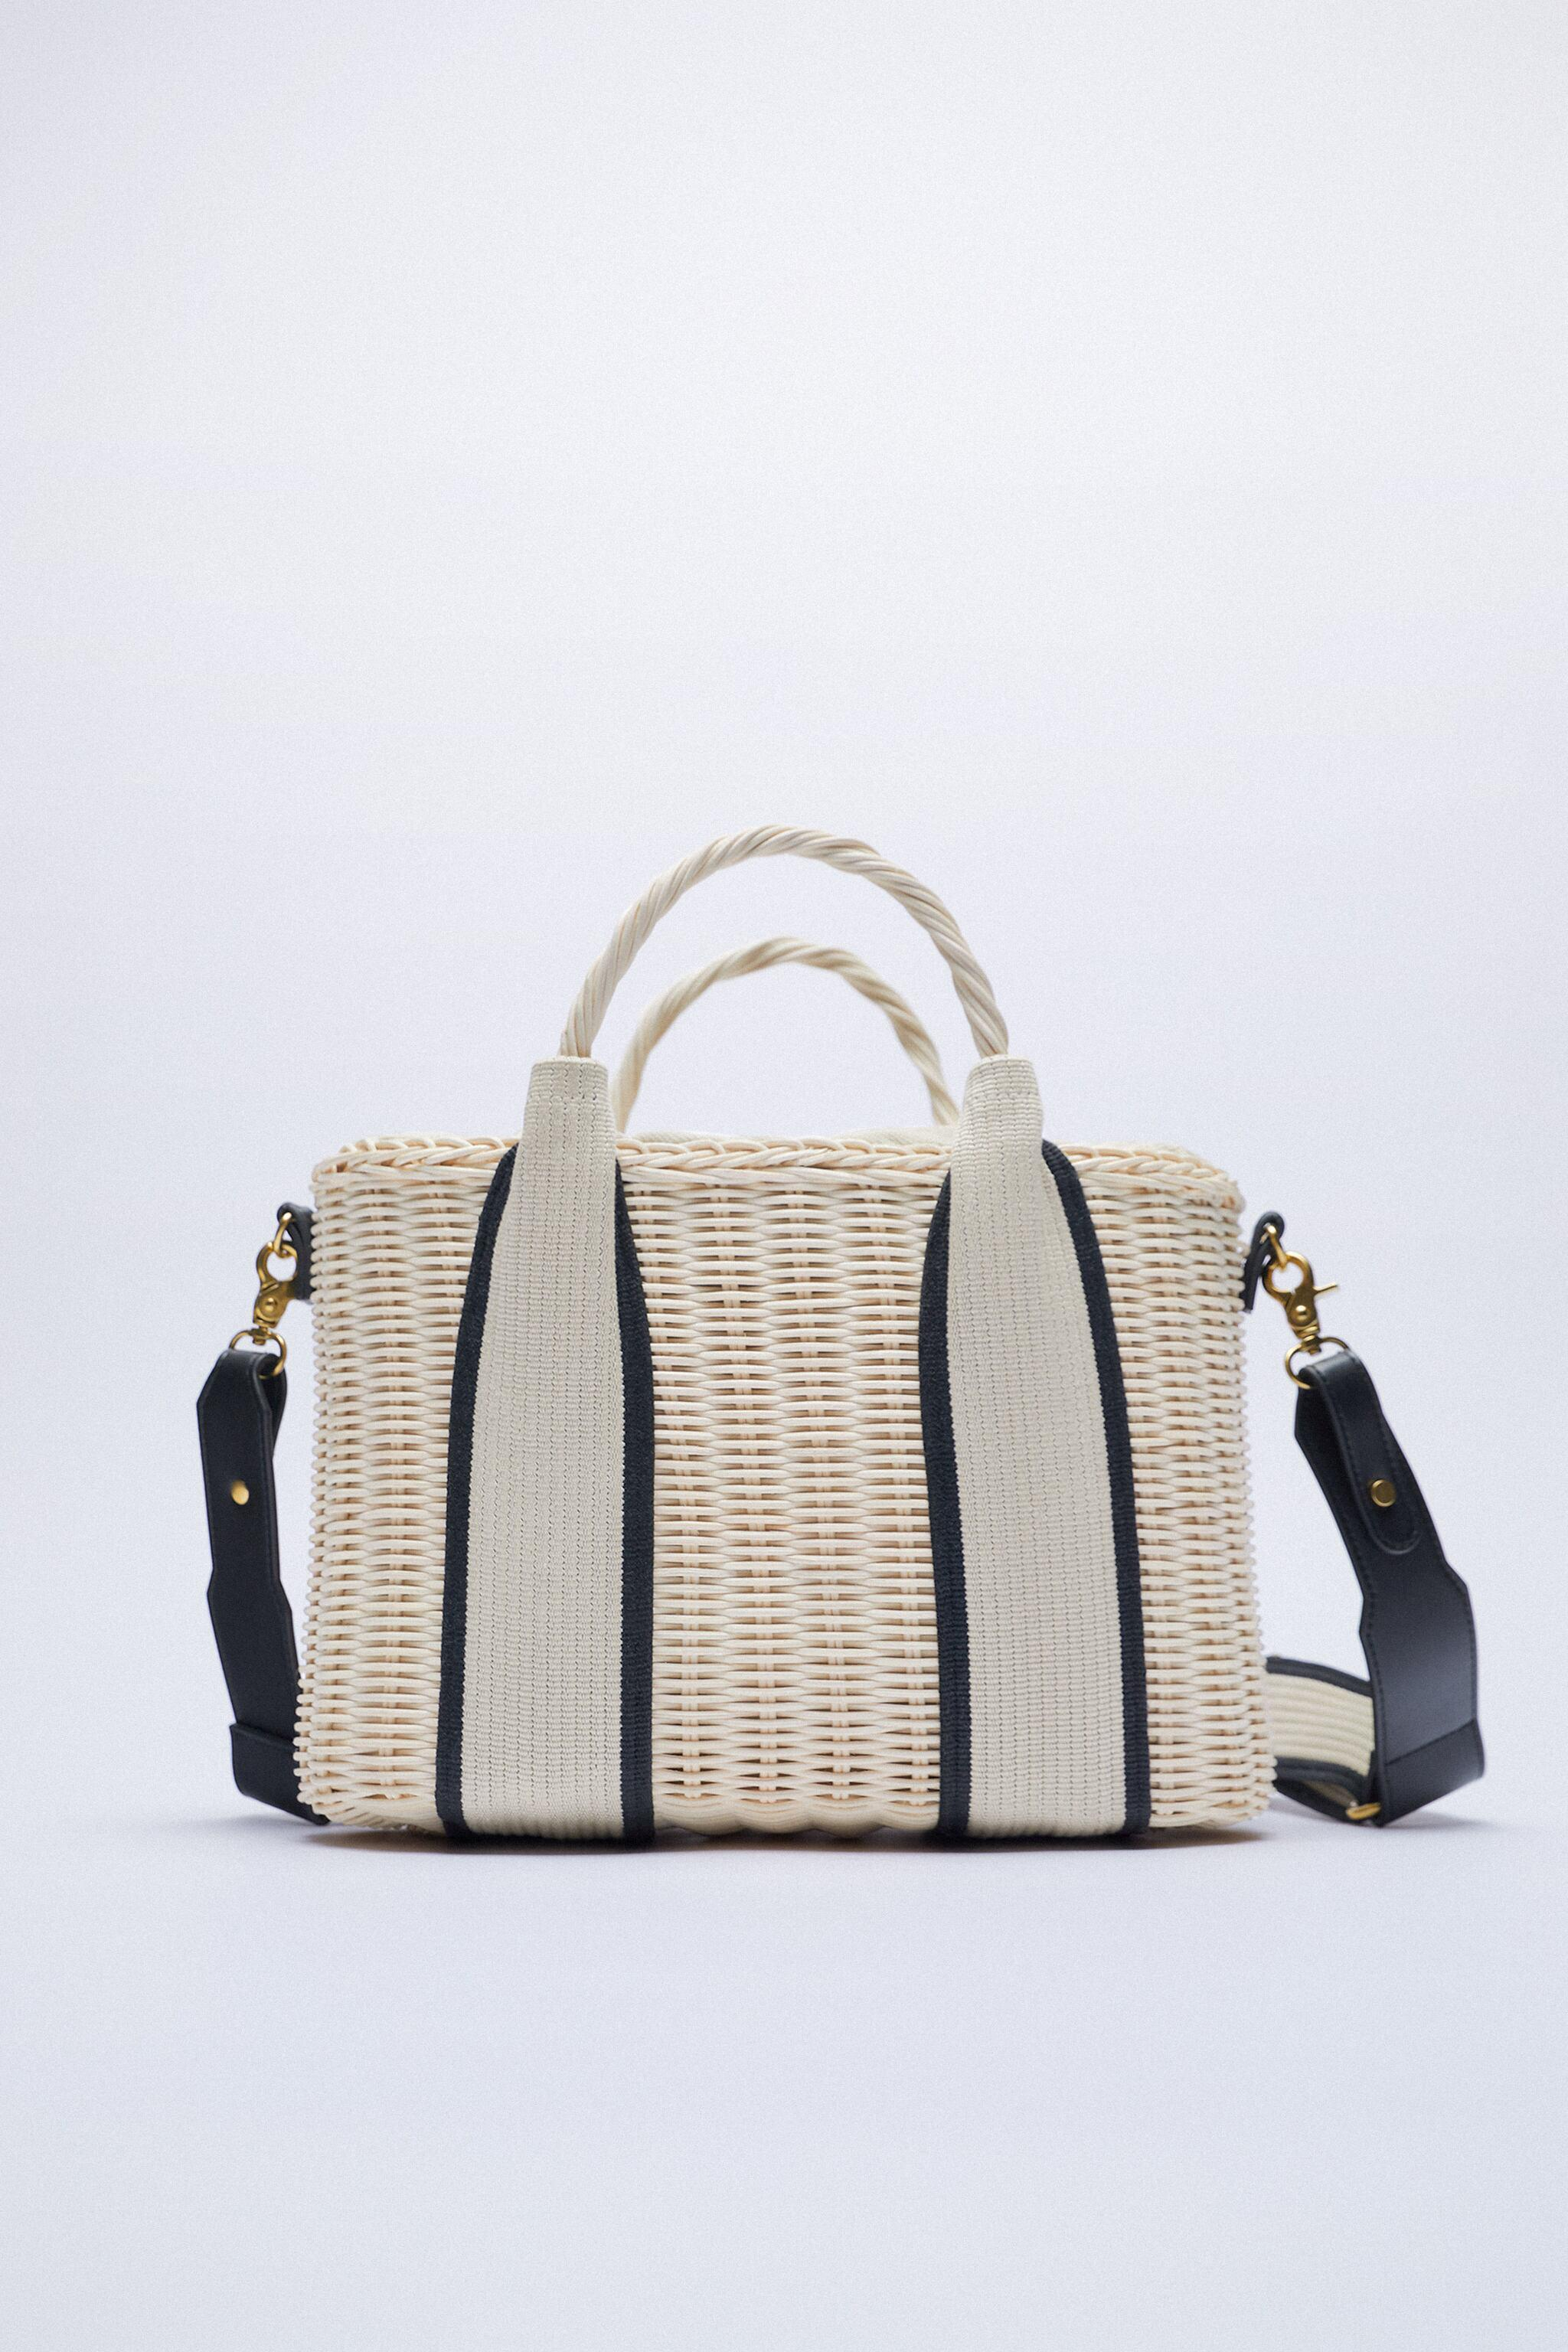 WOVEN TOTE WITH HANDLES